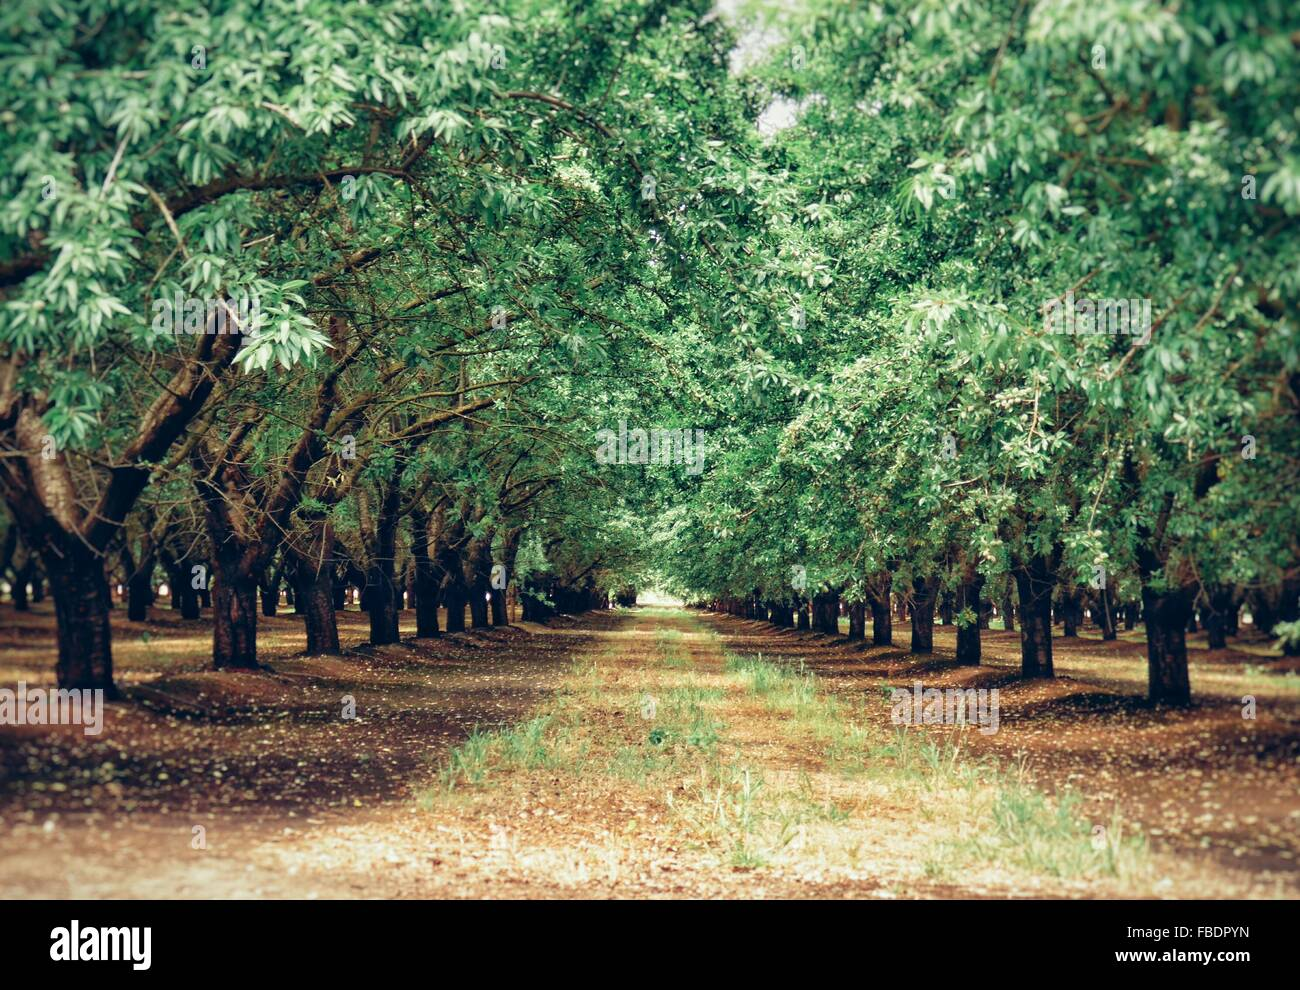 Tree-Lined Alley - Stock Image